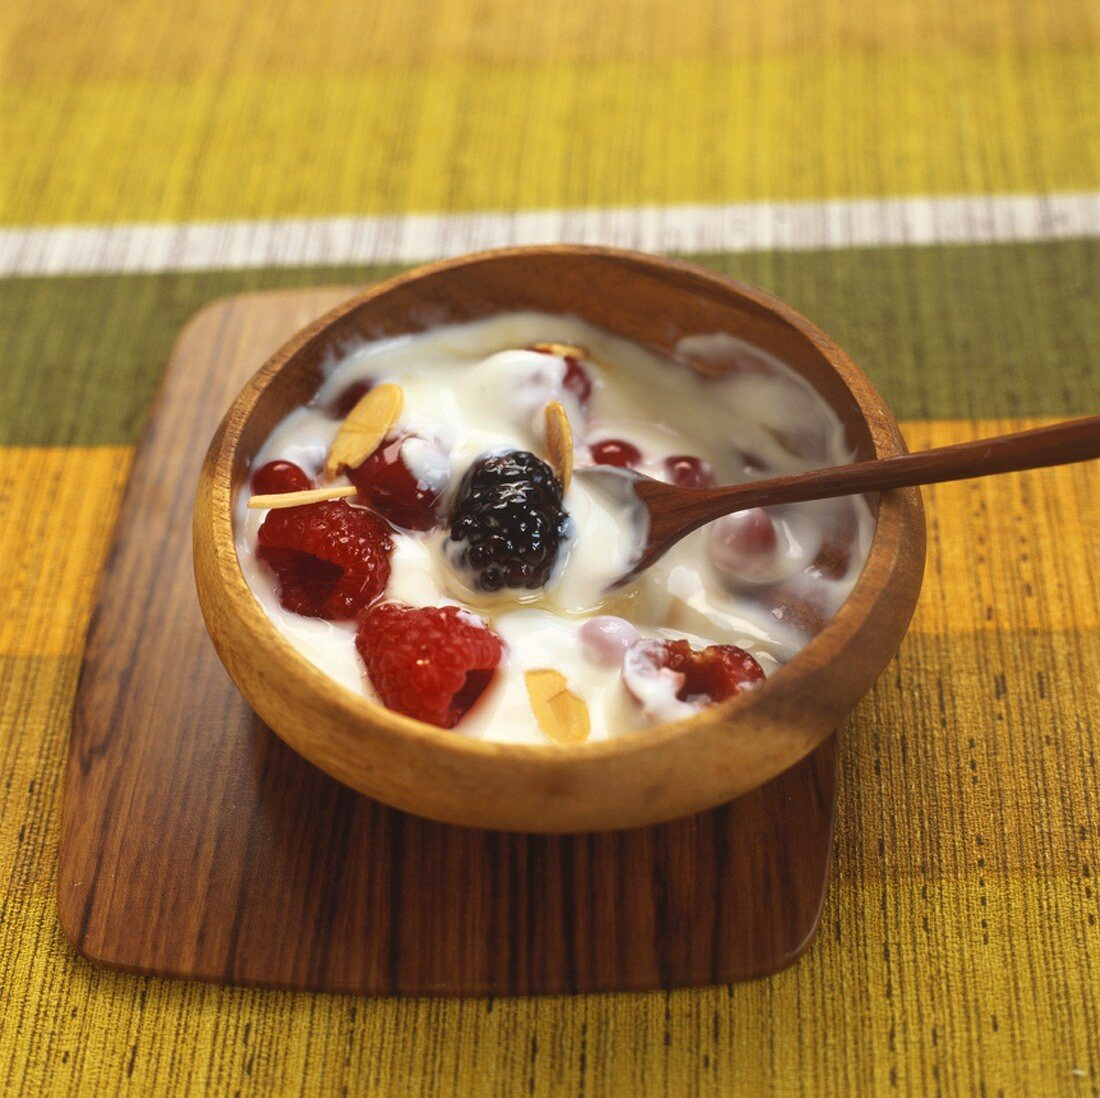 Yoghurt with red berries, honey and almonds in wooden bowl